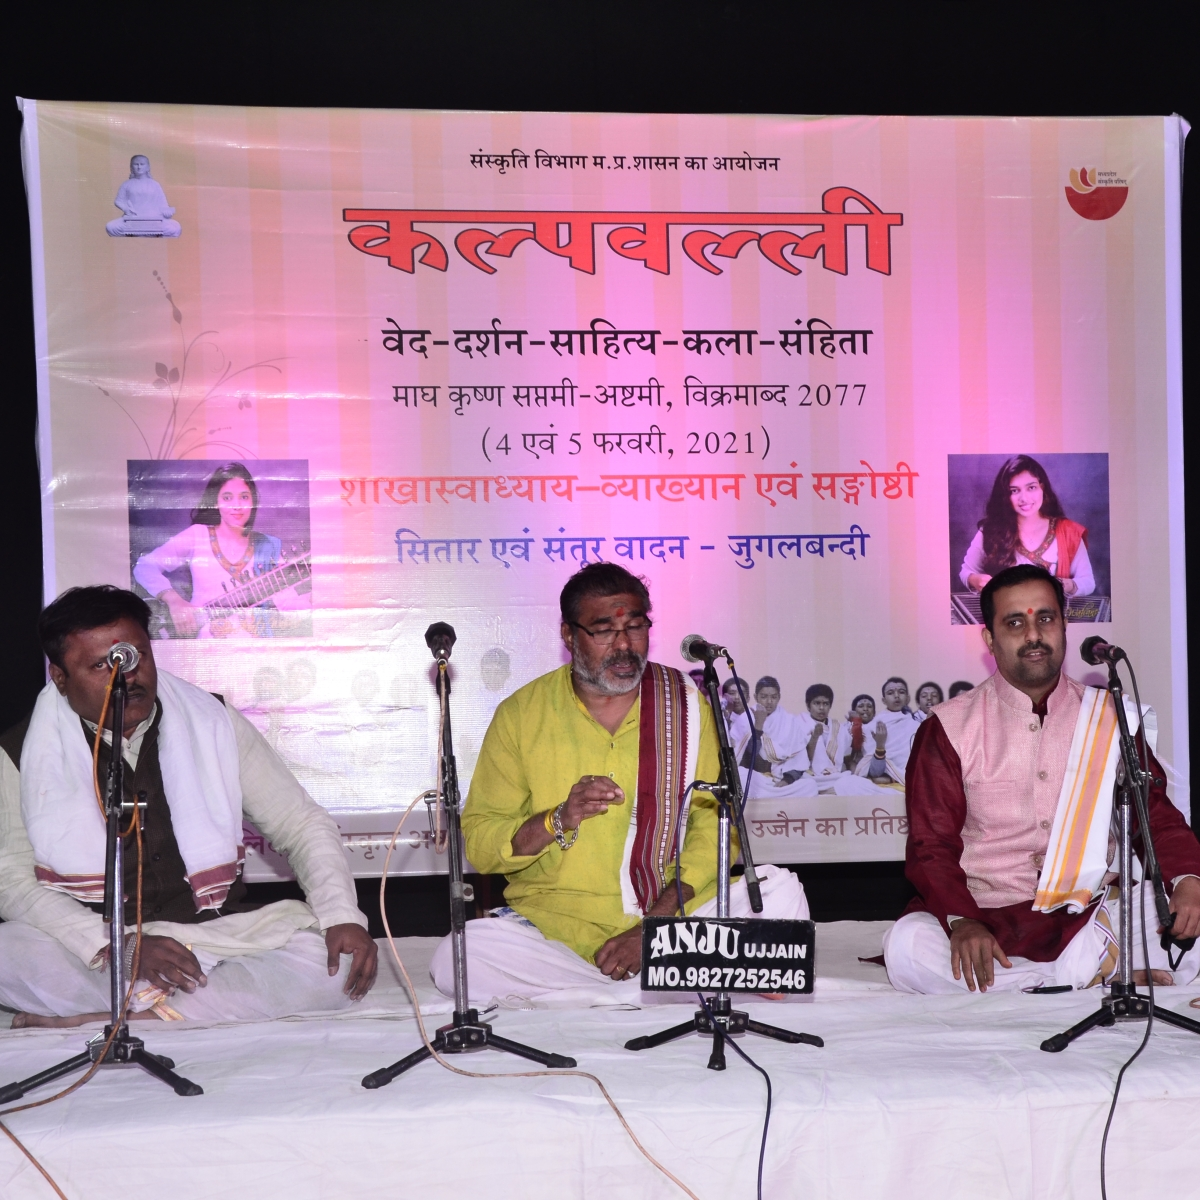 Ujjain: Kalpvalli, a seminar on Vedas and Upnishad inaugurated